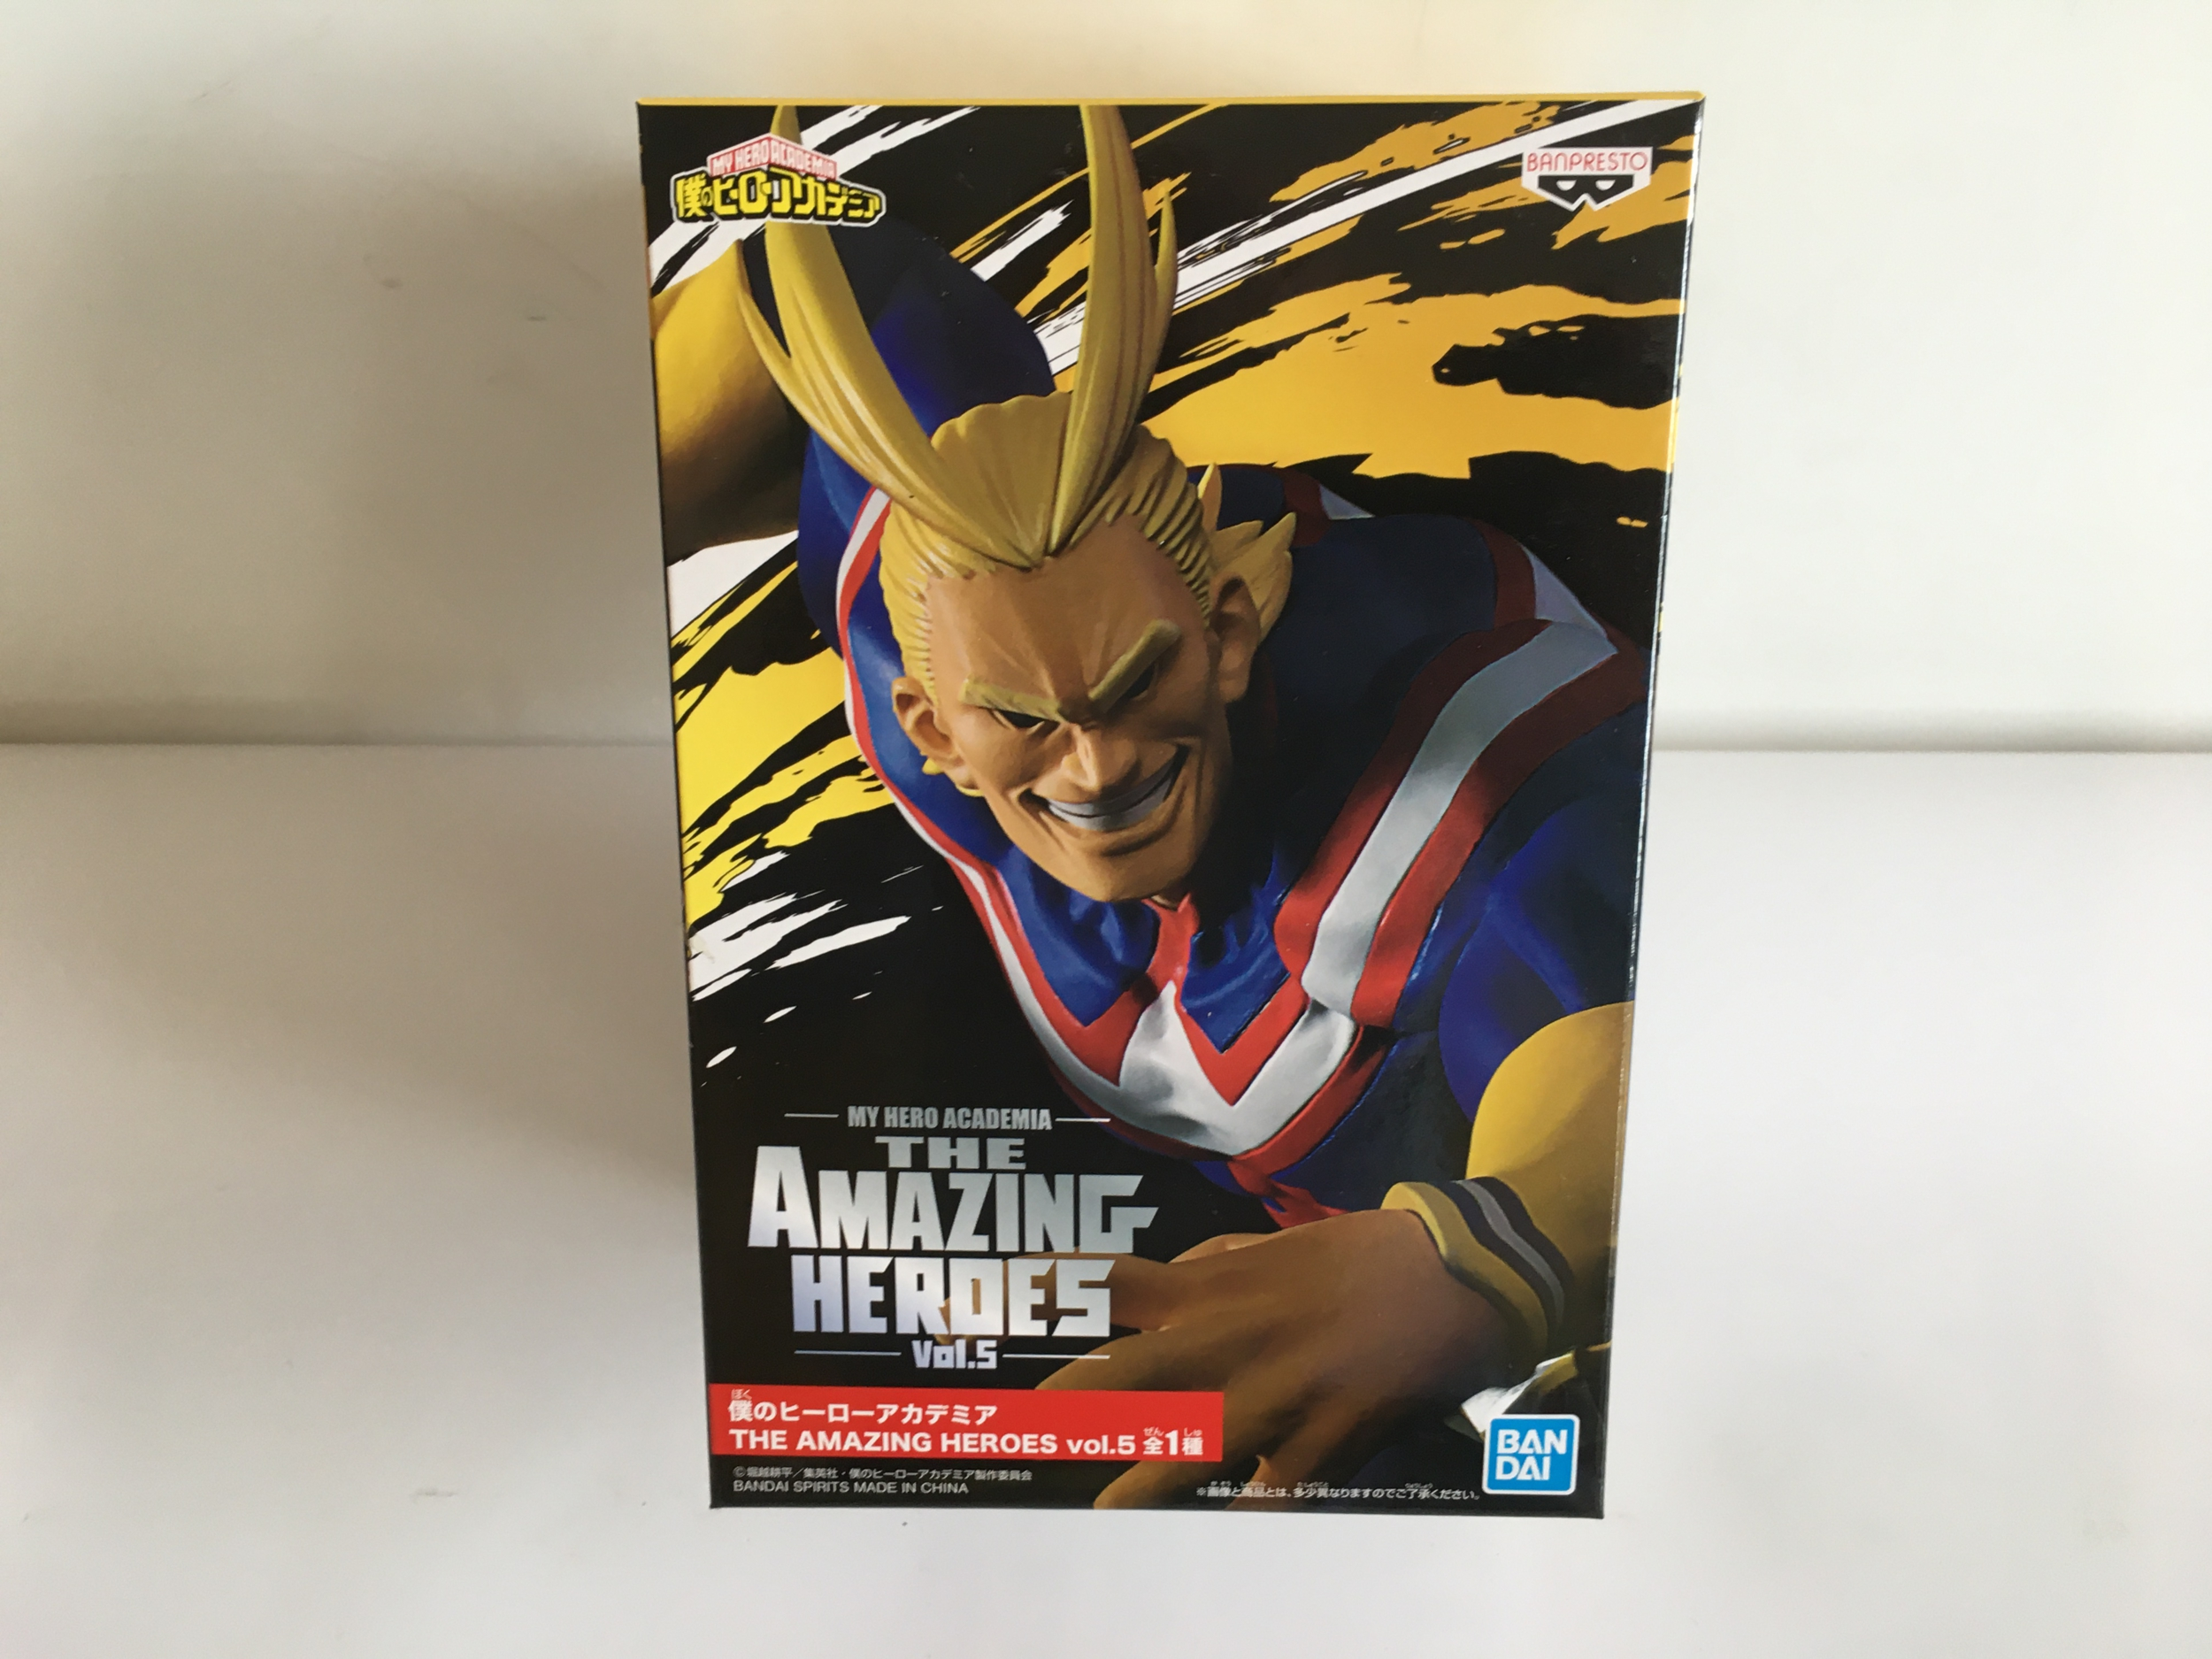 MY HERO ACADEMIA - Amazing Heroes Vol 5 - All Might